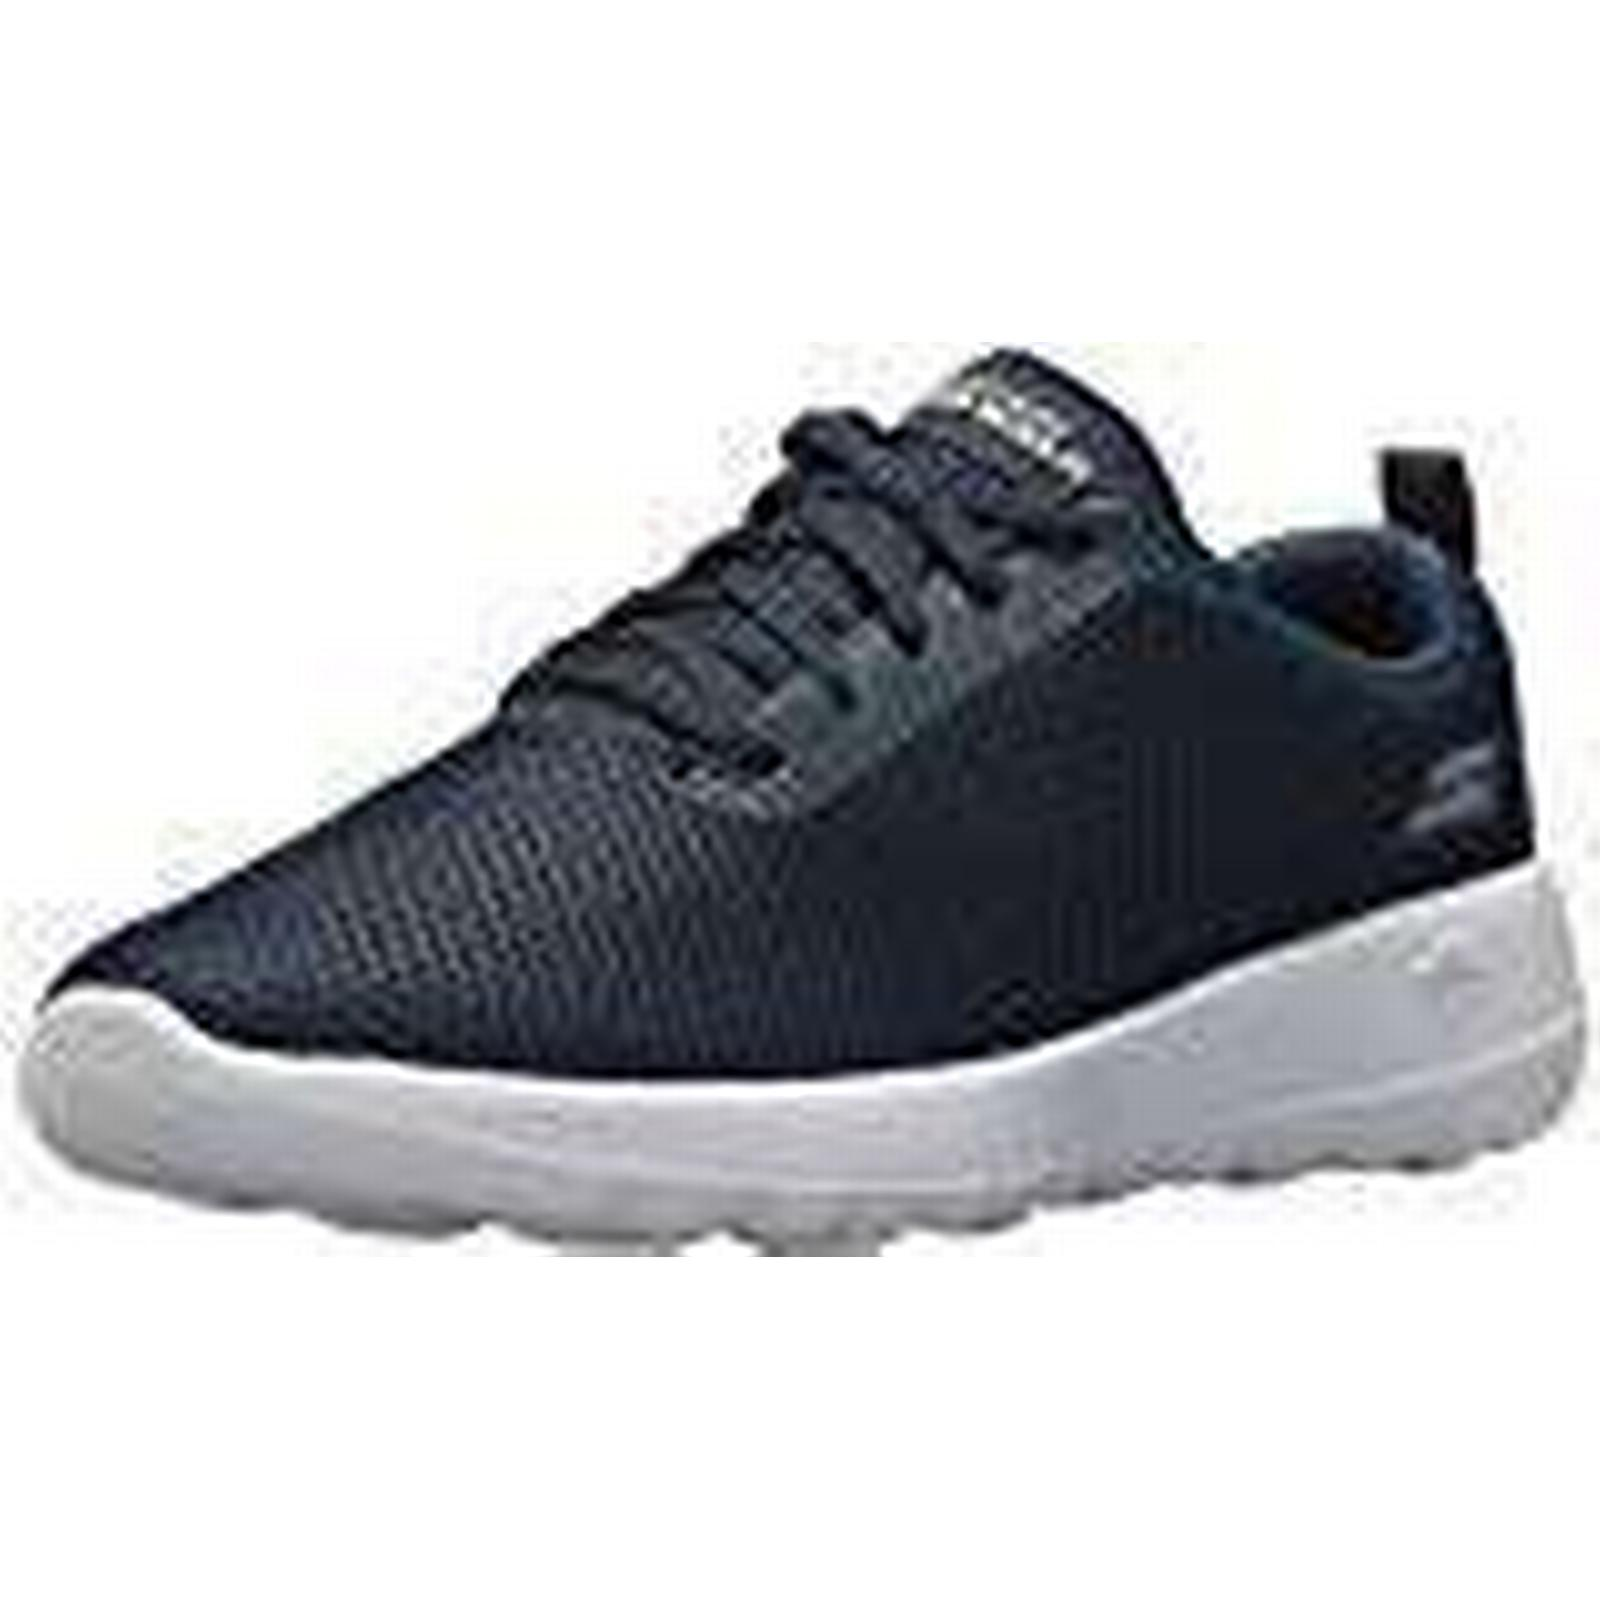 Skechers Women's 15601 Trainers, Blue EU (Navy/White), 4 UK 37 EU Blue 2ae7db